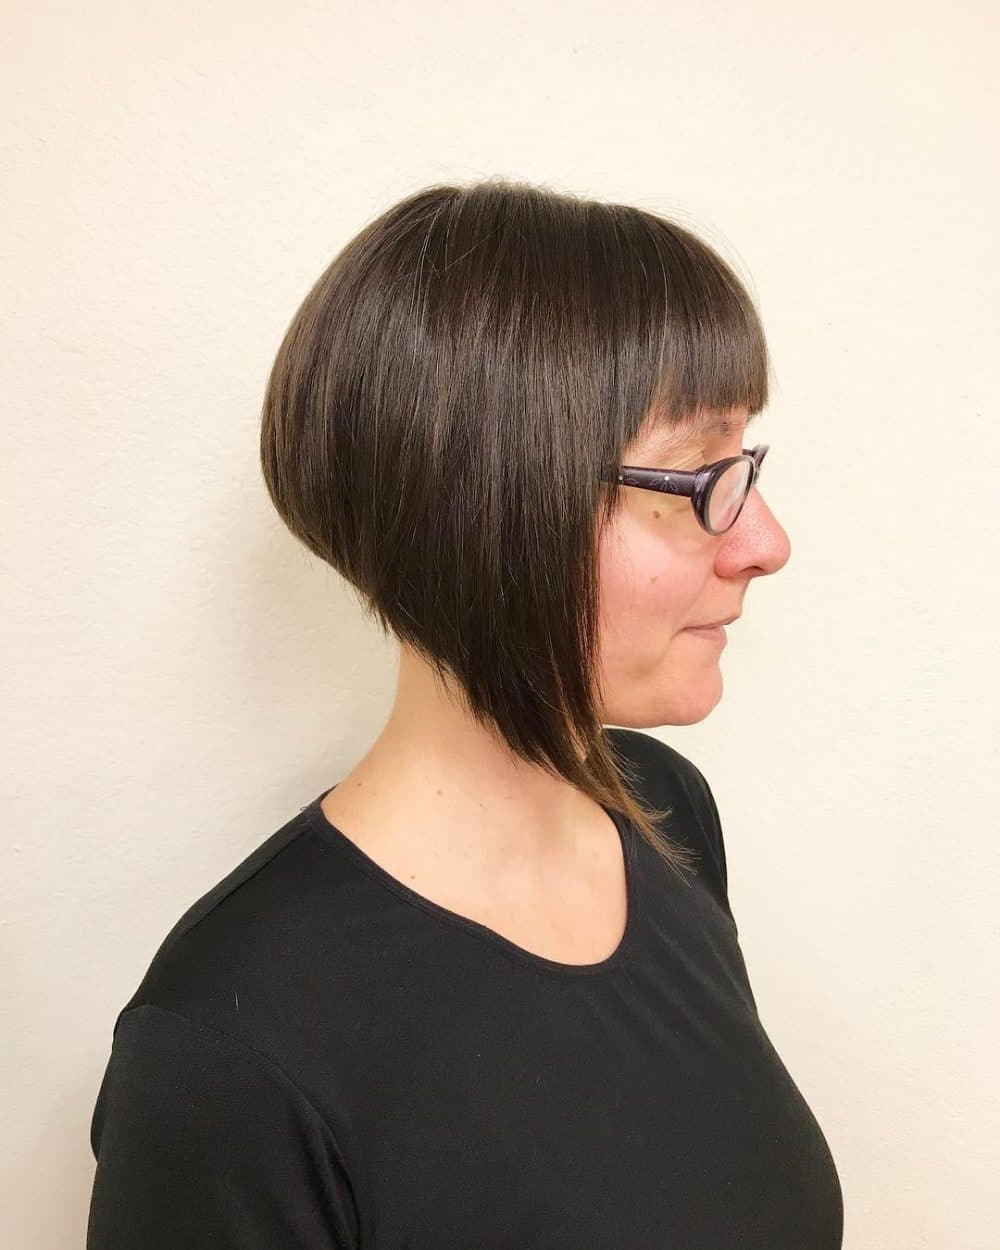 33 Hottest A Line Bob Haircuts You'll Want To Try In 2019 For 2019 Cute A Line Bob Hairstyles With Volume Towards The Ends (Gallery 15 of 20)